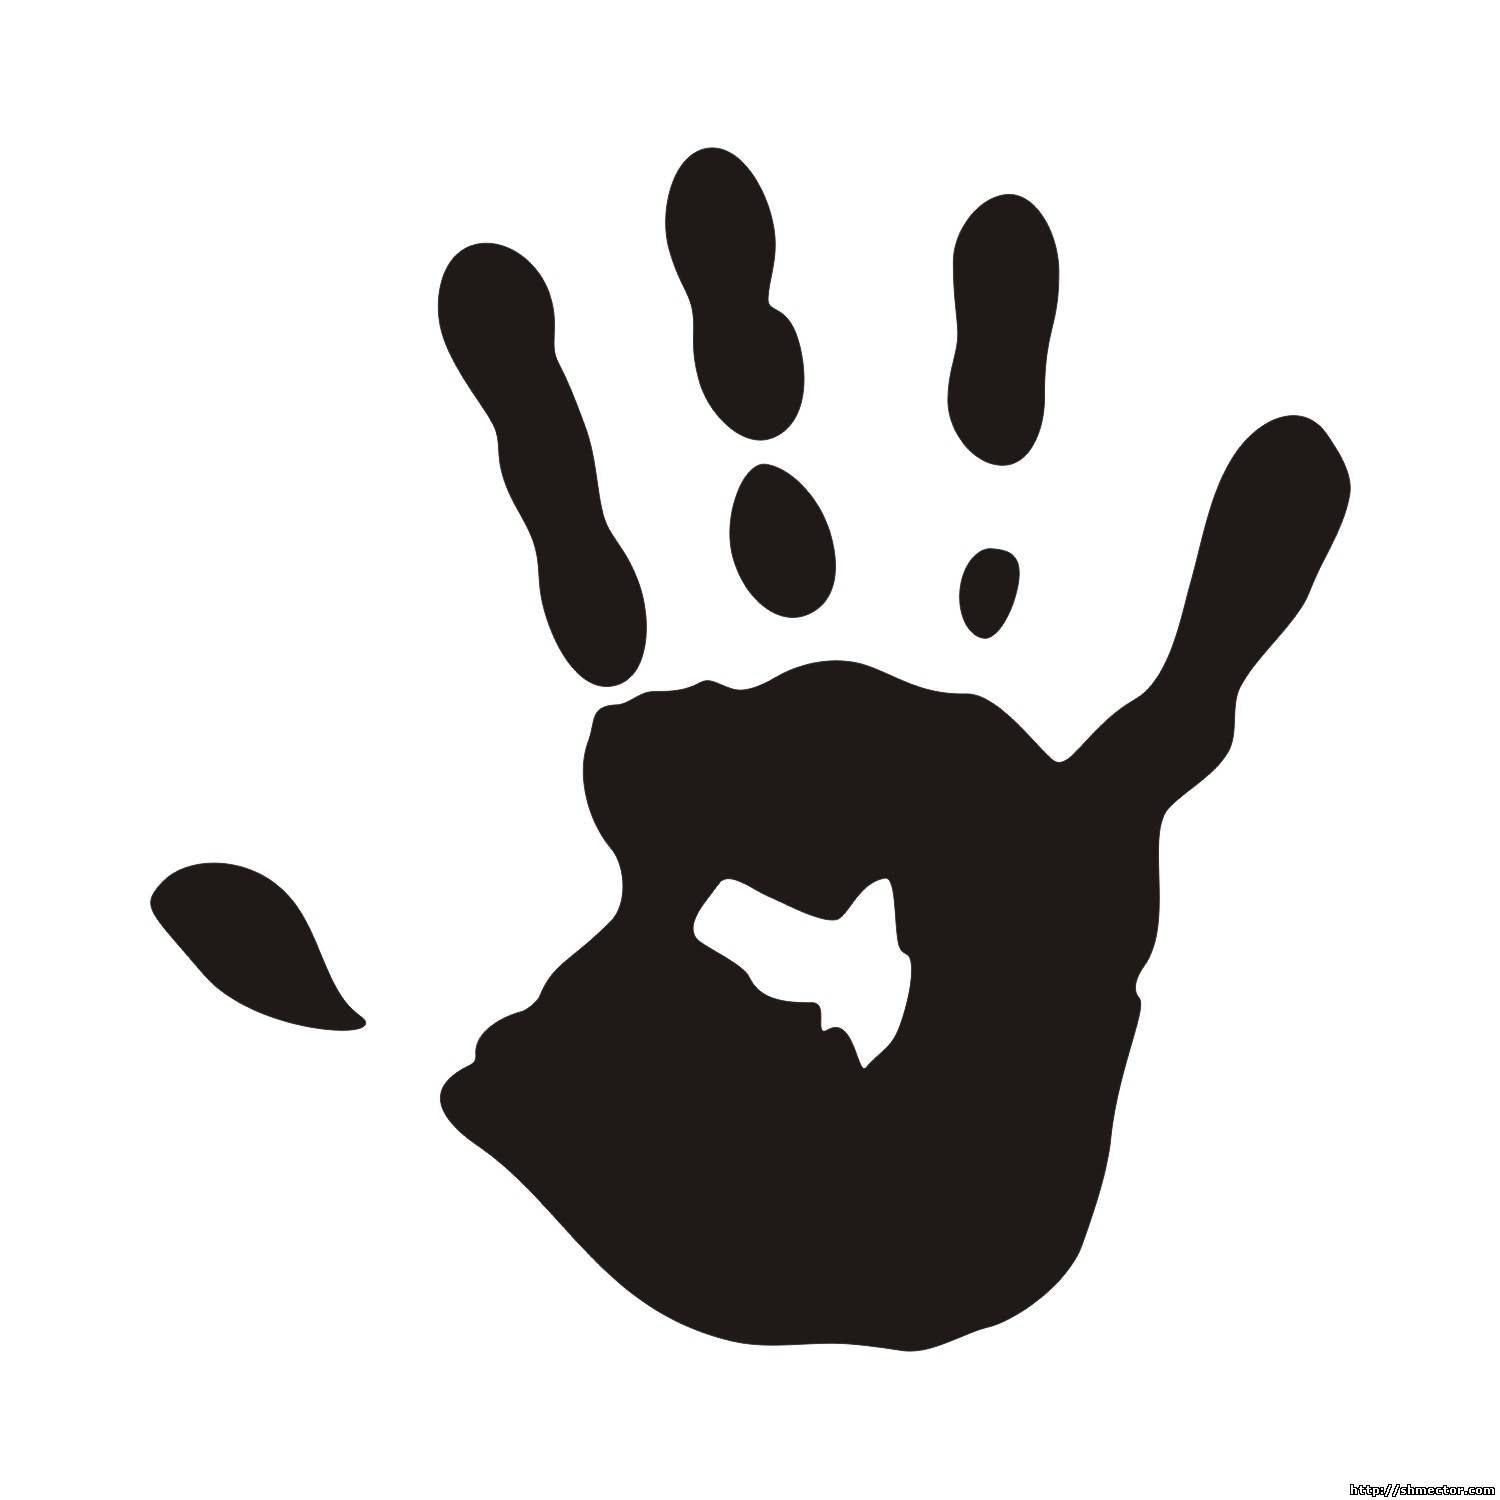 hands silhouette vector at getdrawings com free for personal use rh getdrawings com hand vector pick hand vector pick